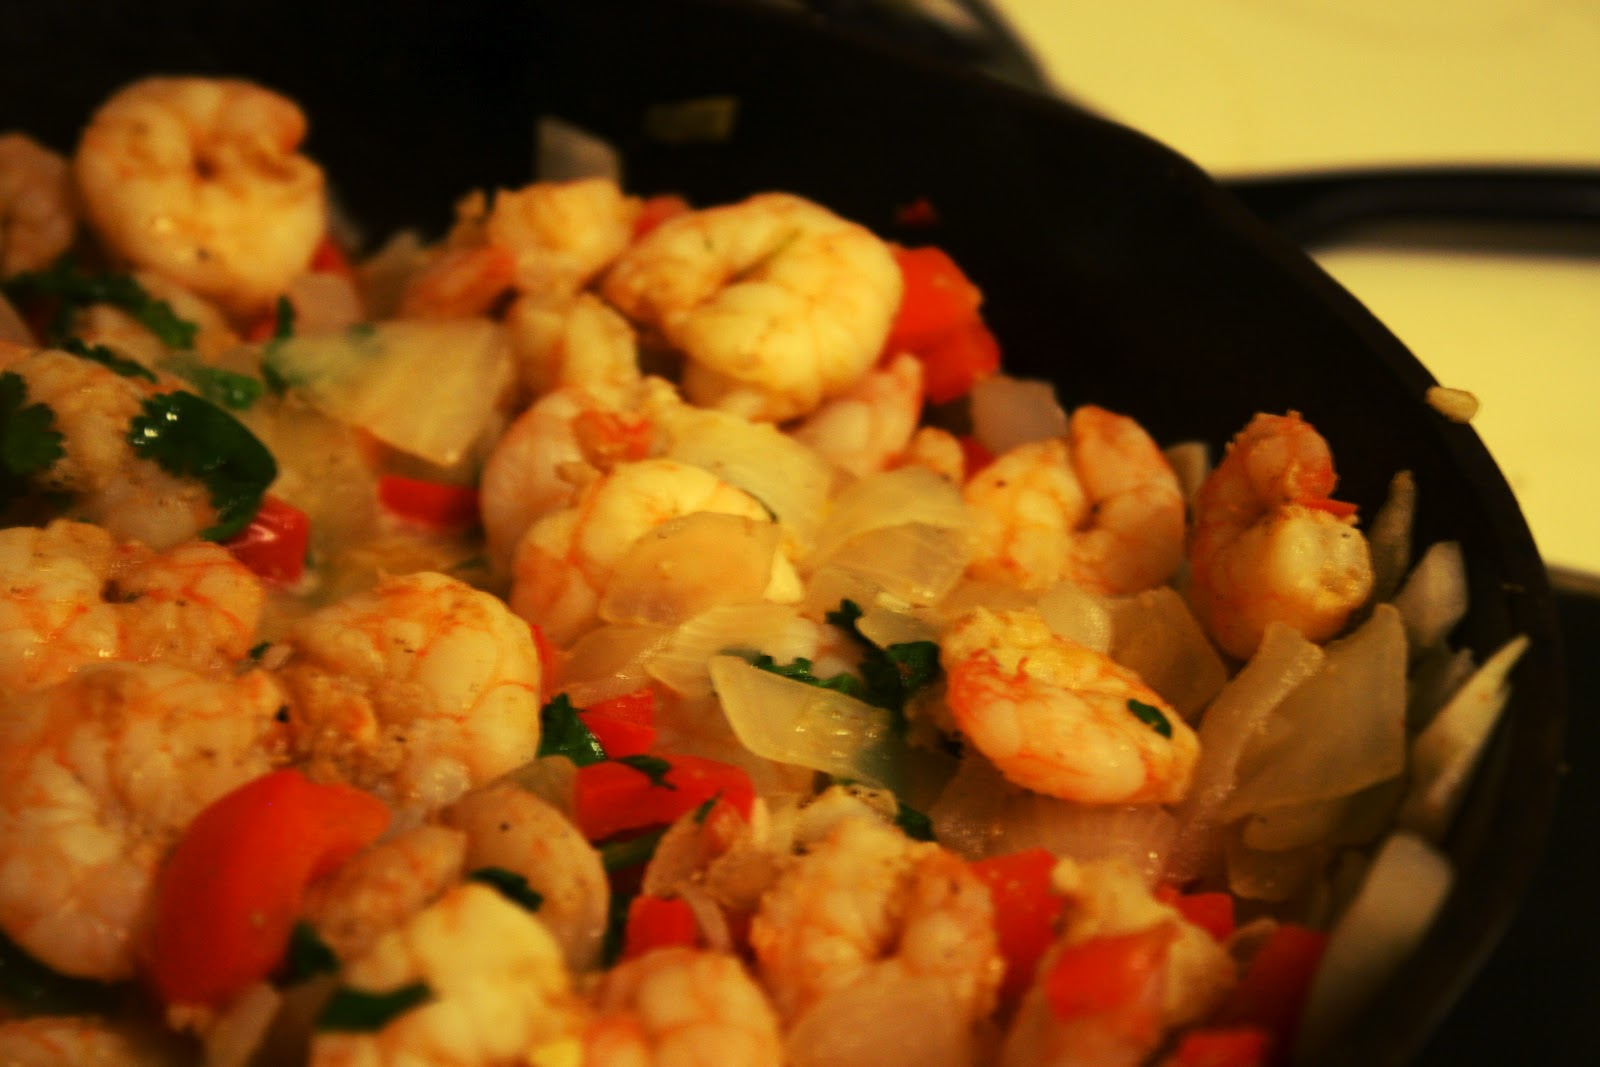 My Weekend's Cooked: Garlic Lime Shrimp over Rigatoni